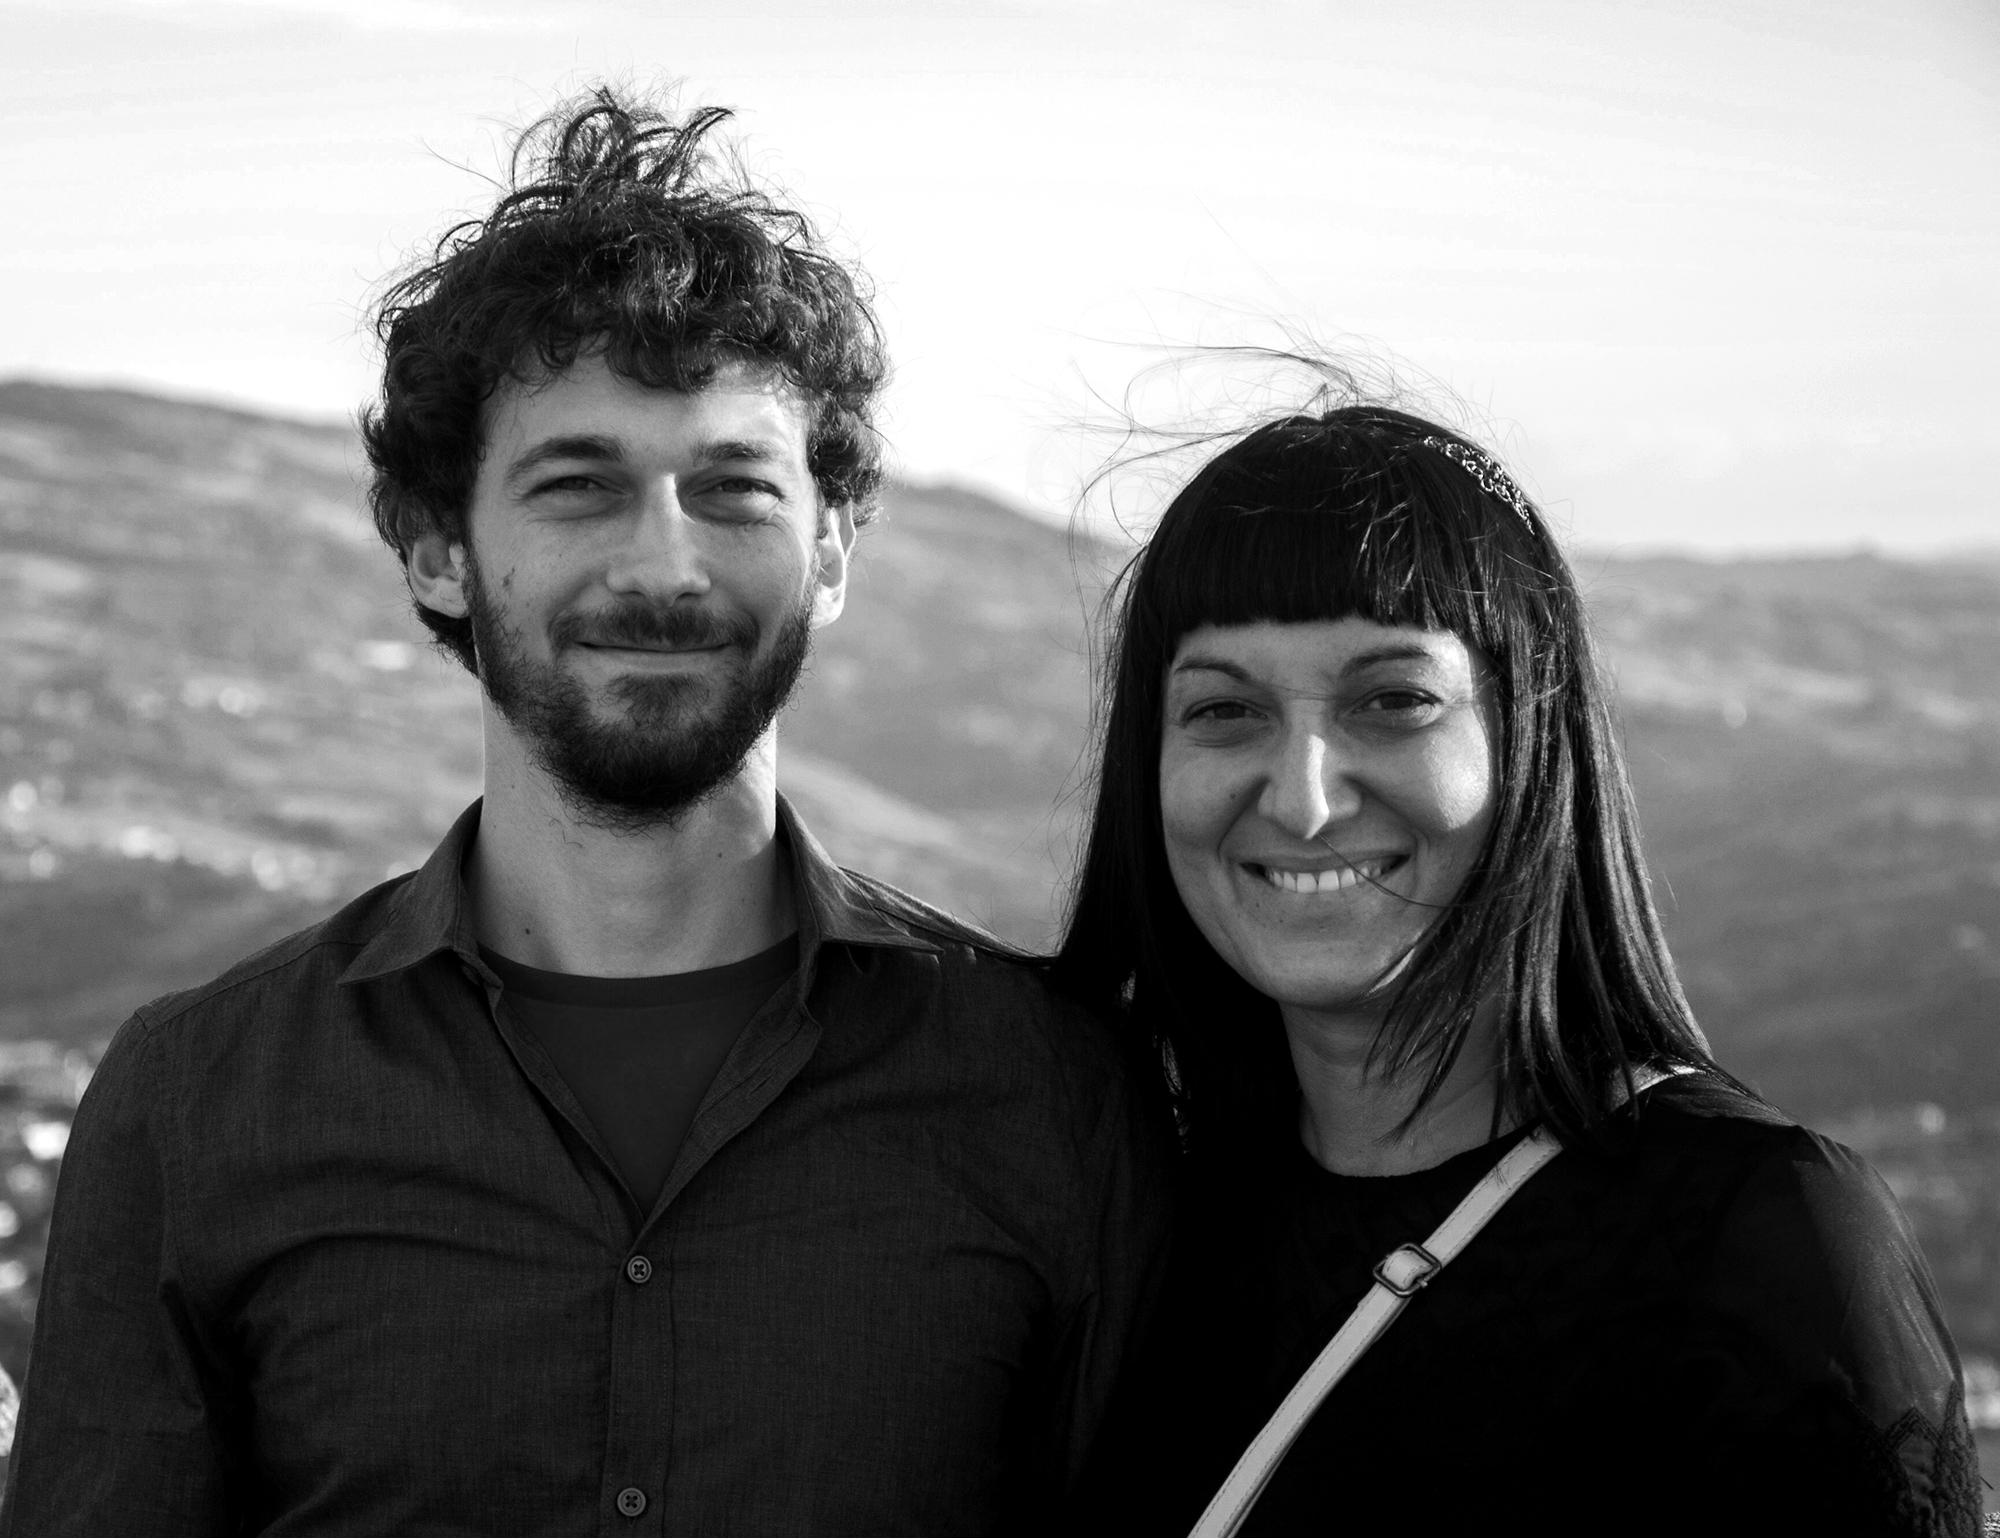 Stefano Croci and Silvia Siberini